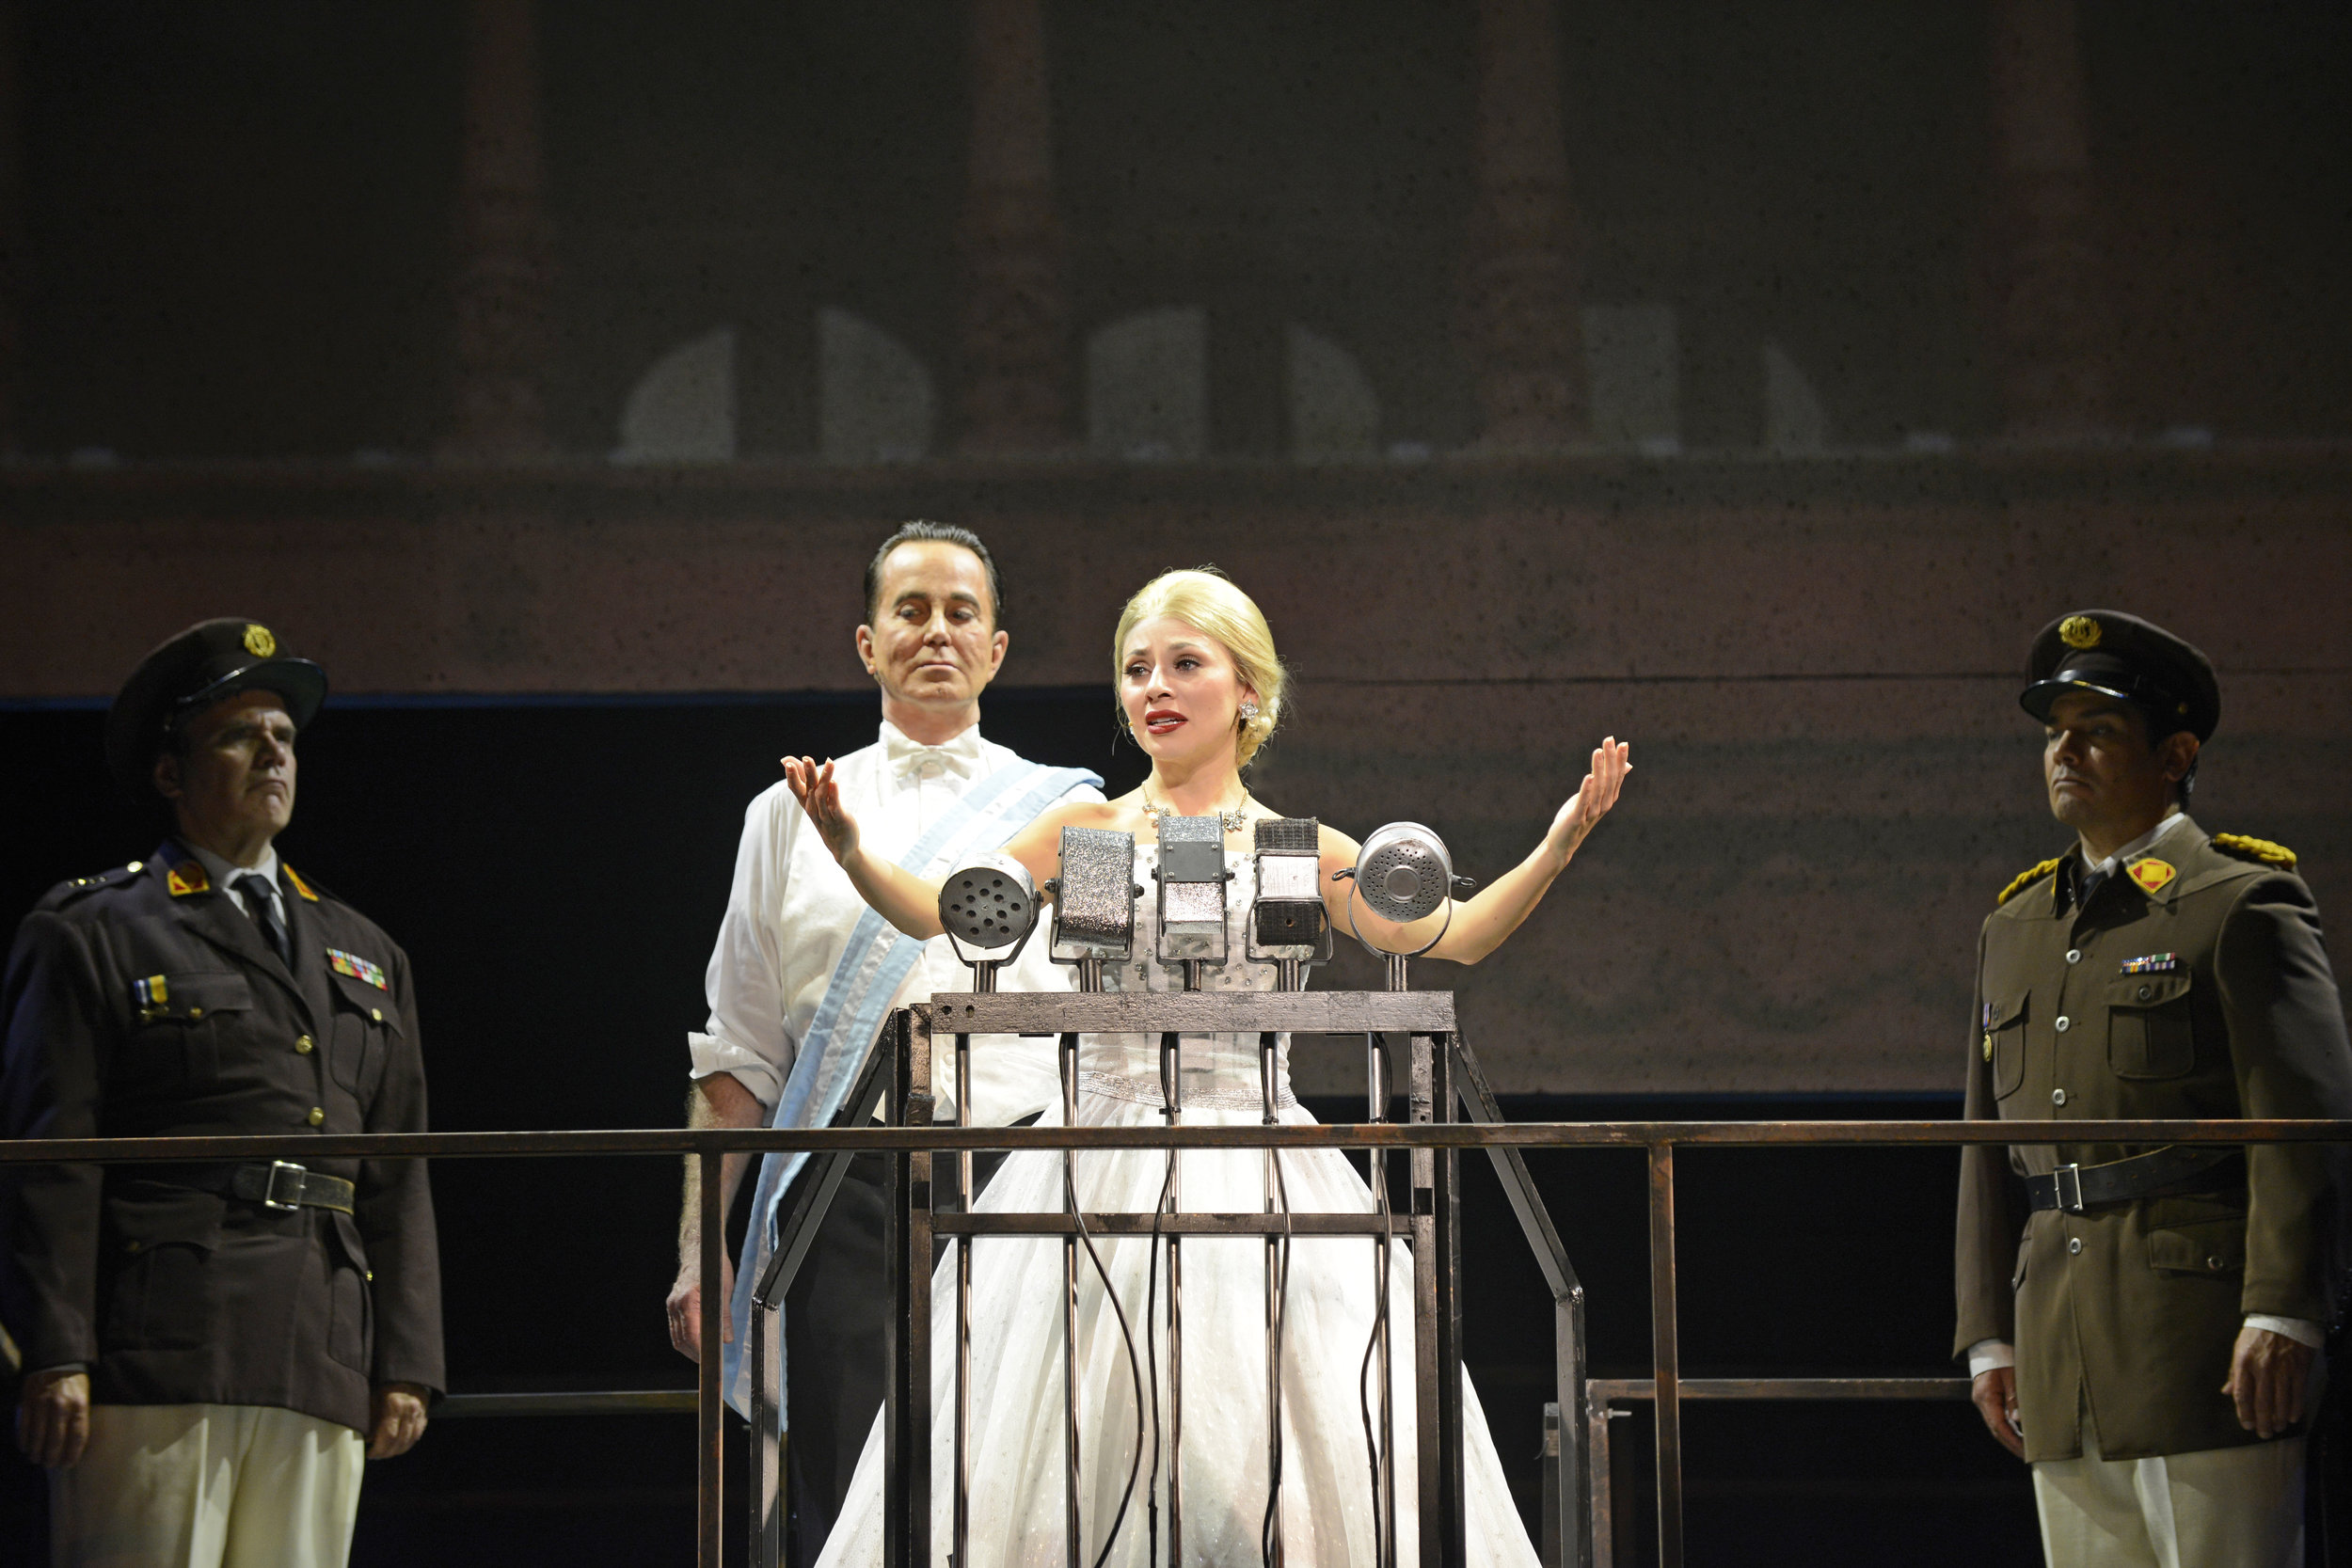 013-Evita-Musical-Theatre-West.jpg